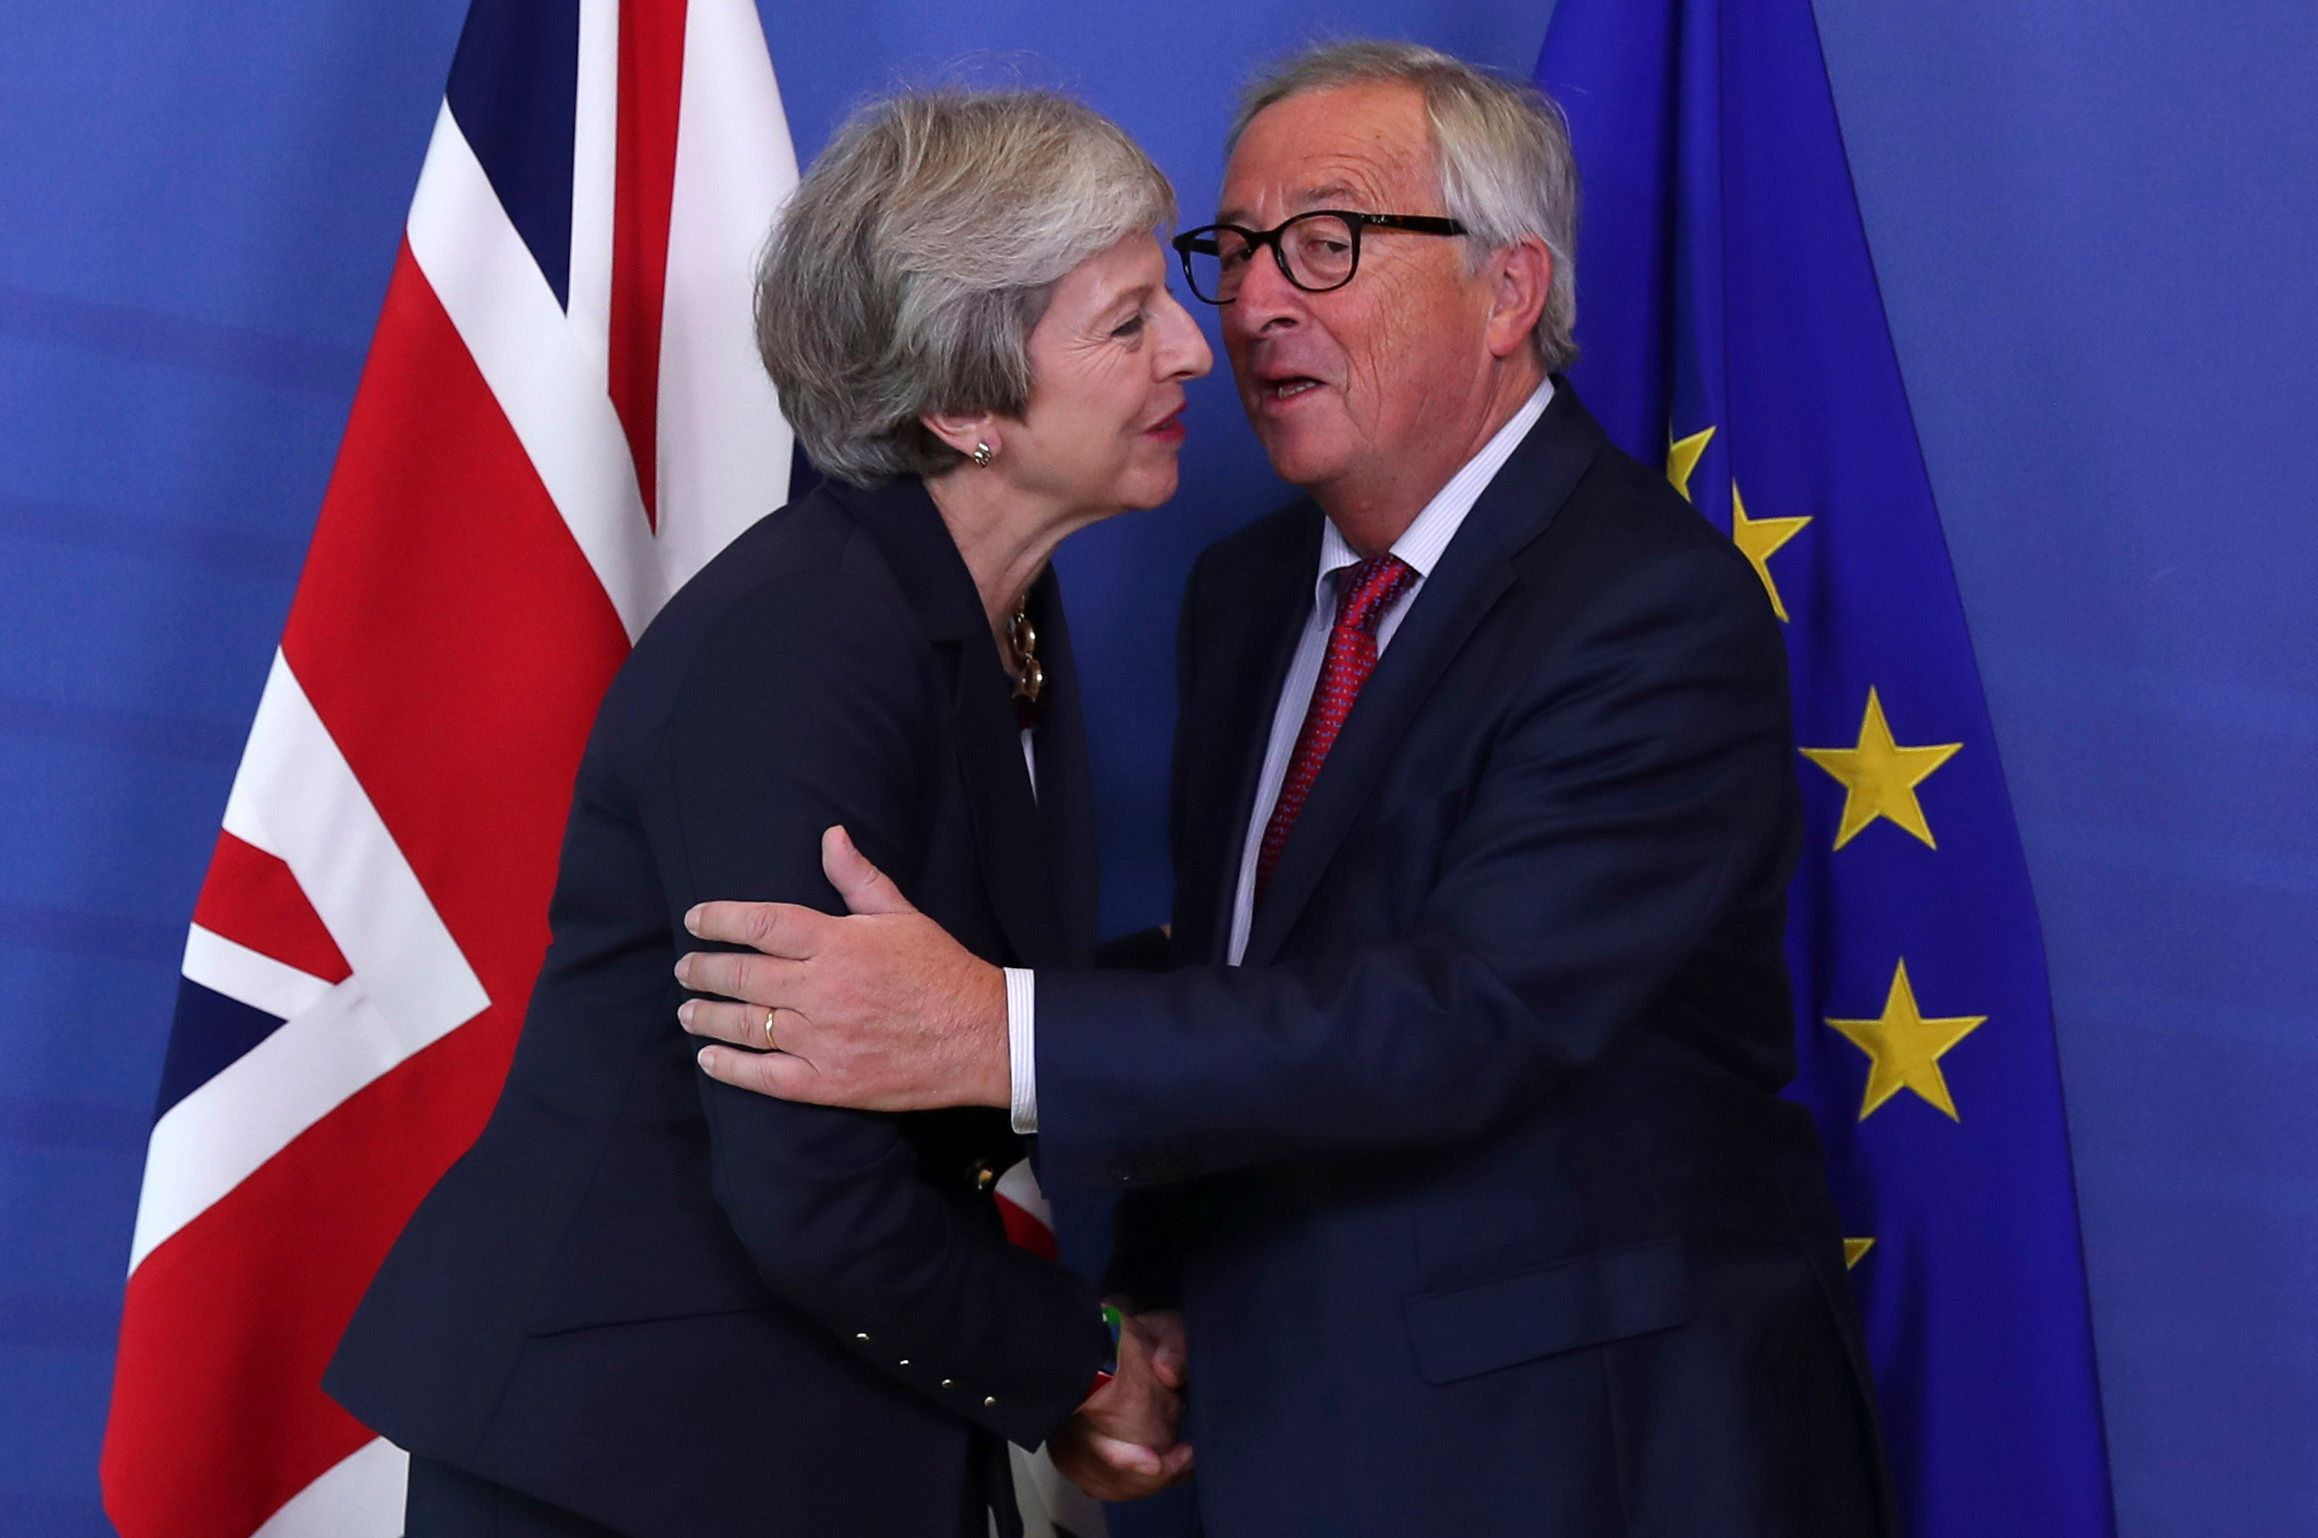 May and European Union consider extending transition to break Brexit impasse